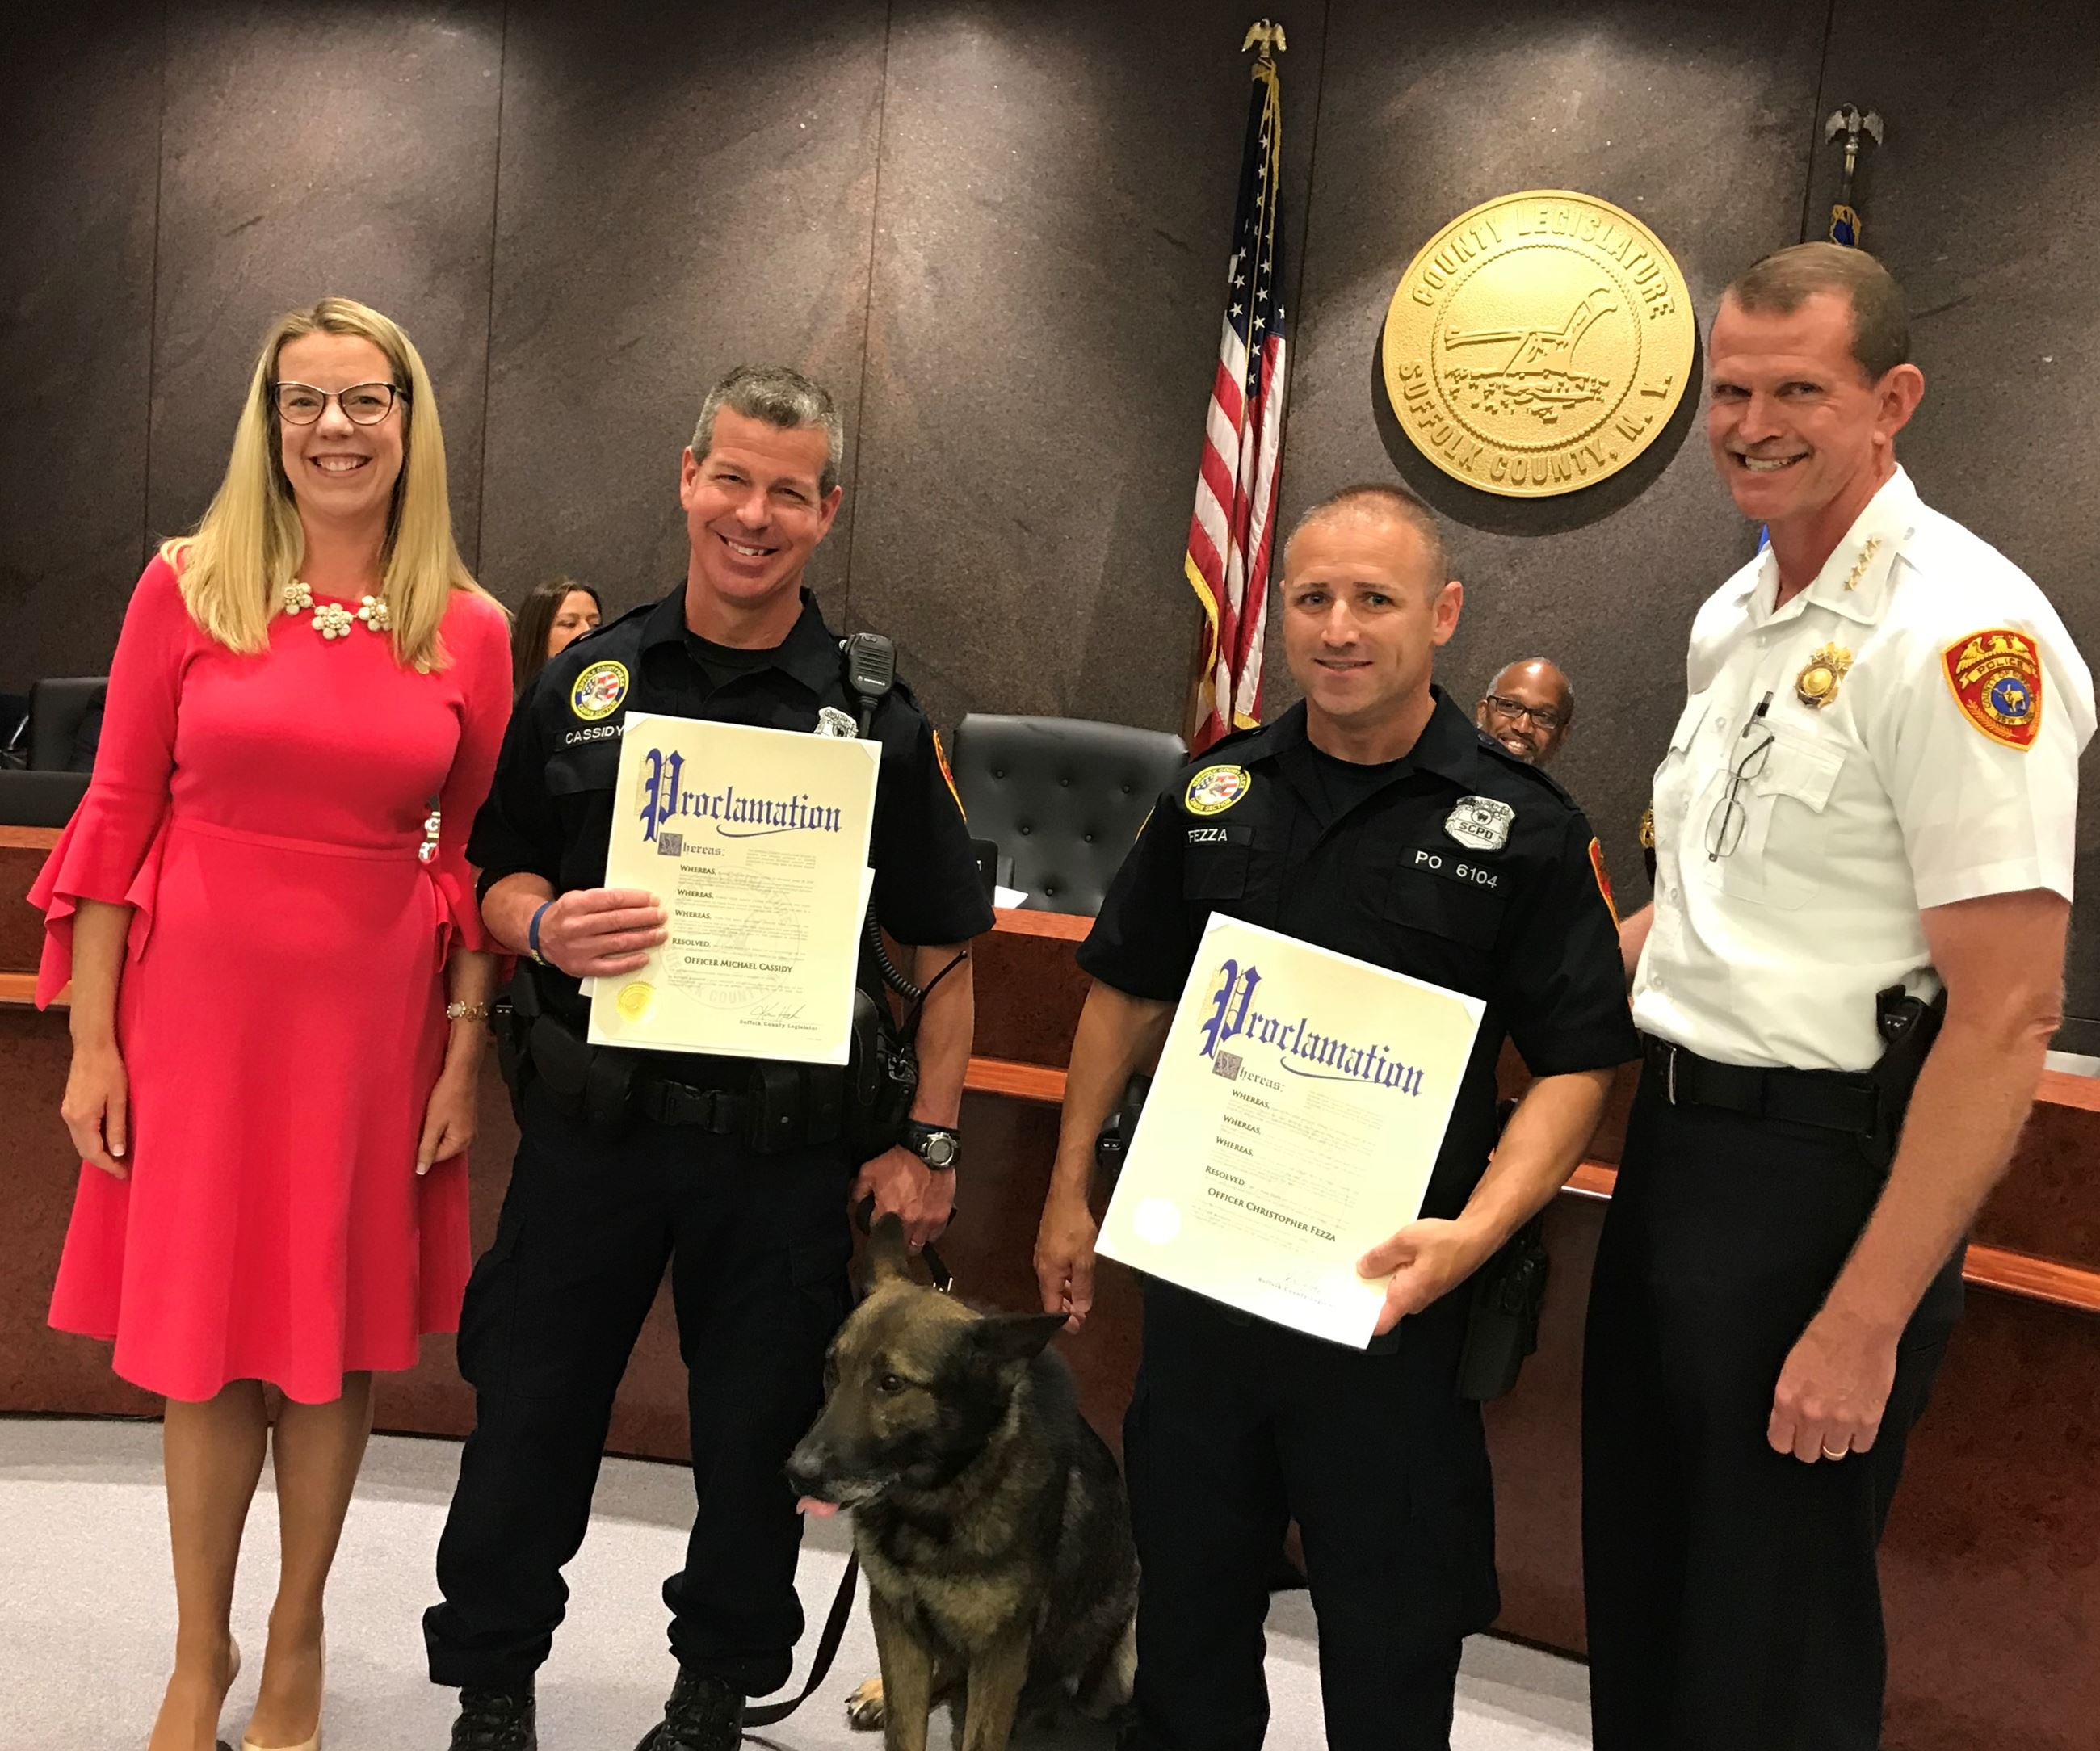 Suffolk_Honors_Canine_Officer_for_Efforts _to_Save_Sucidial_Man